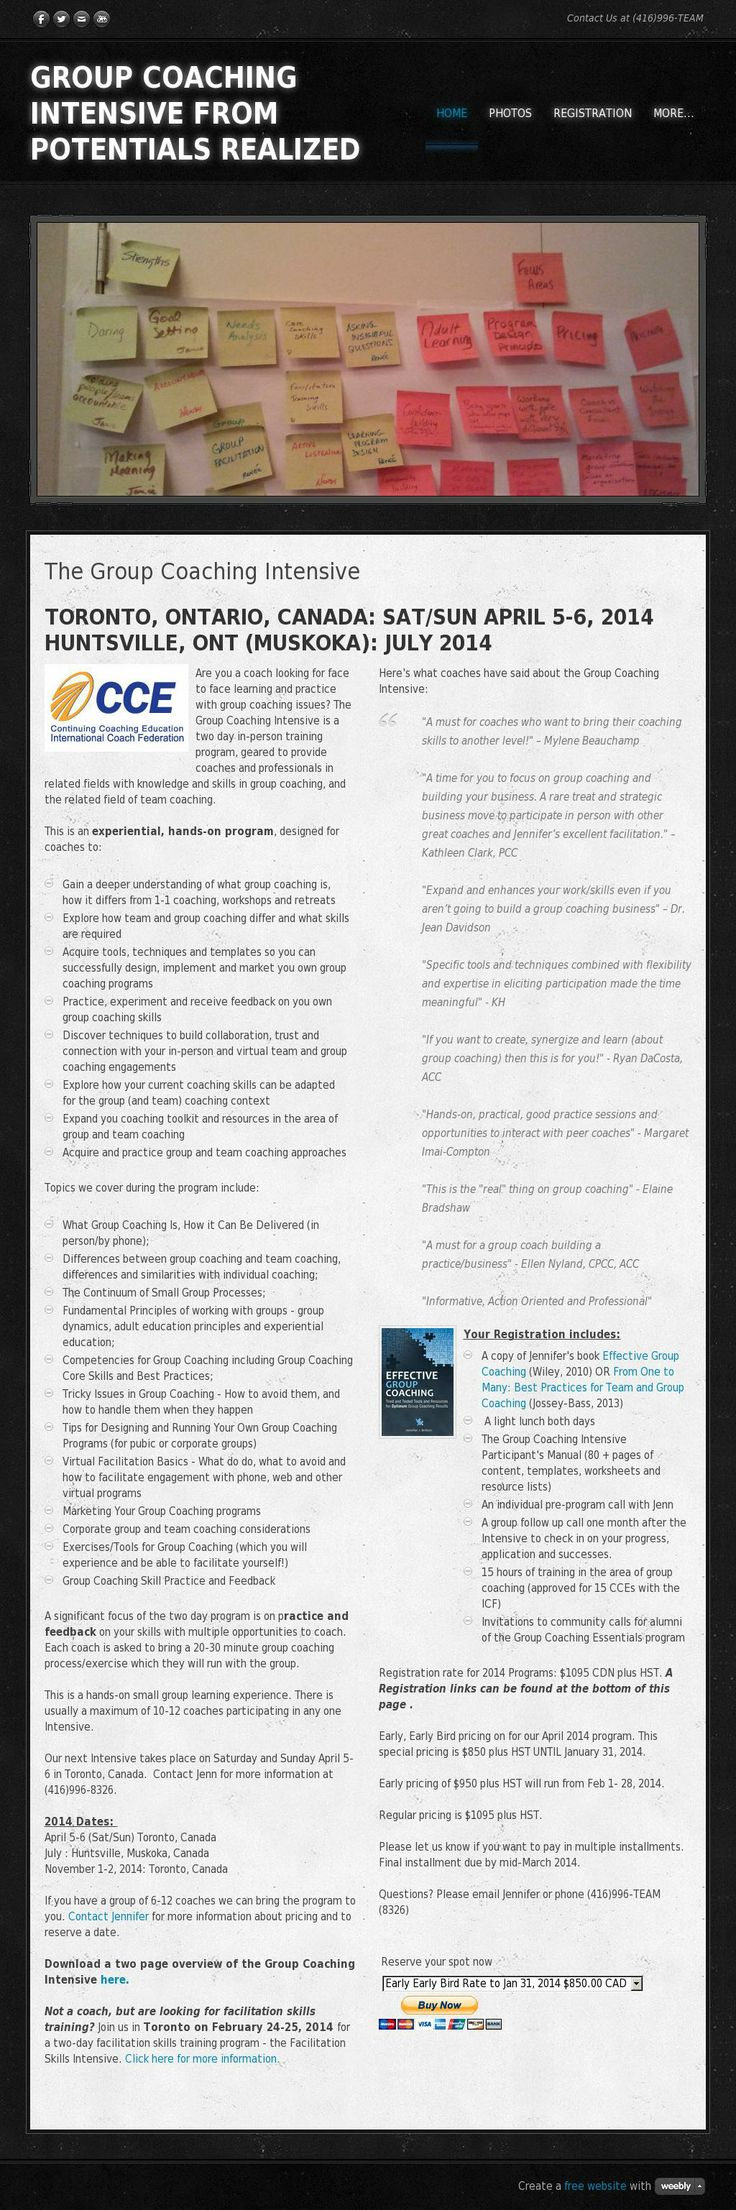 Group Coaching Intensive  - Group Coaching training for coaches from author and coach Jennifer Britton. Visit us at http://www.groupcoachingintensive.com. The website 'groupcoachingintensive.com' courtesy of @Pinstamatic (http://pinstamatic.com)